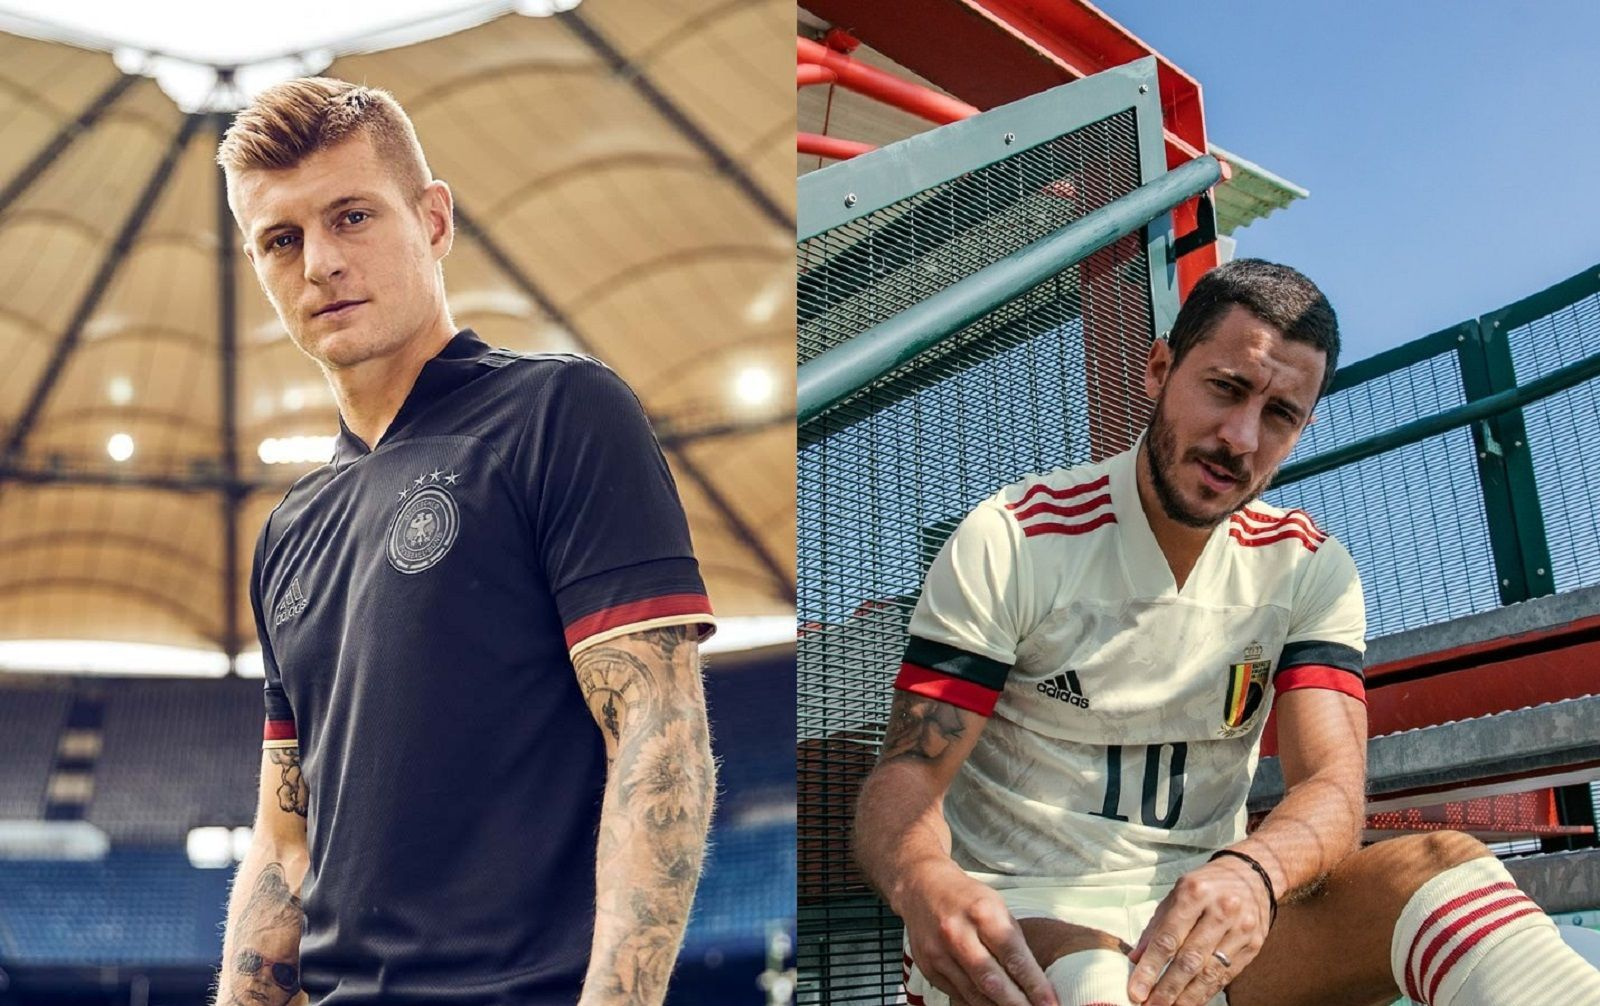 The adidas jersey for Euro 2020